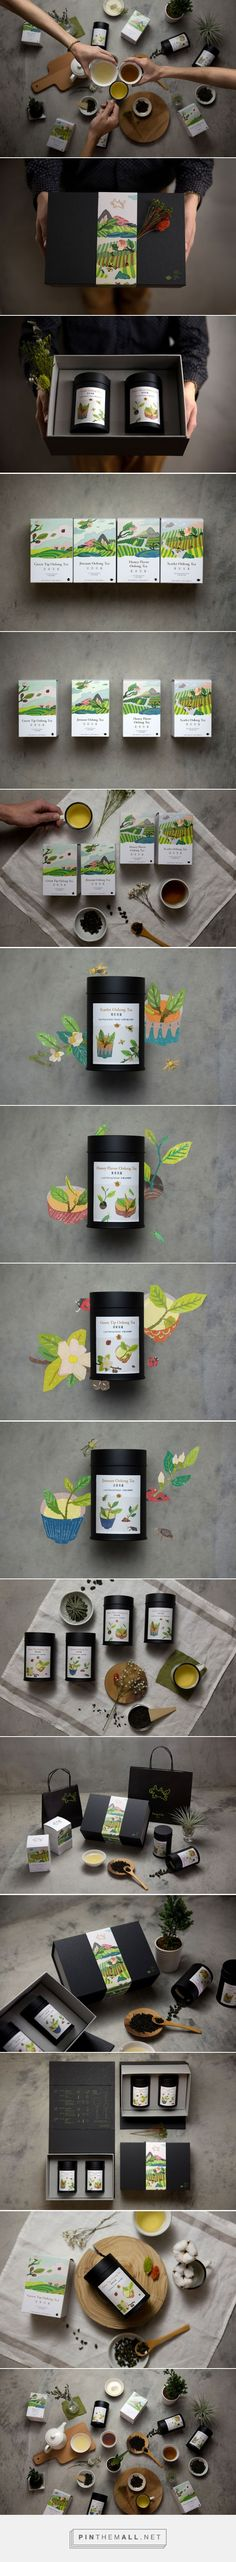 FongCha Tea packaging designed by Nio Ni (Taiwan) - http://www.packagingoftheworld.com/2016/01/fongcha-tea.html